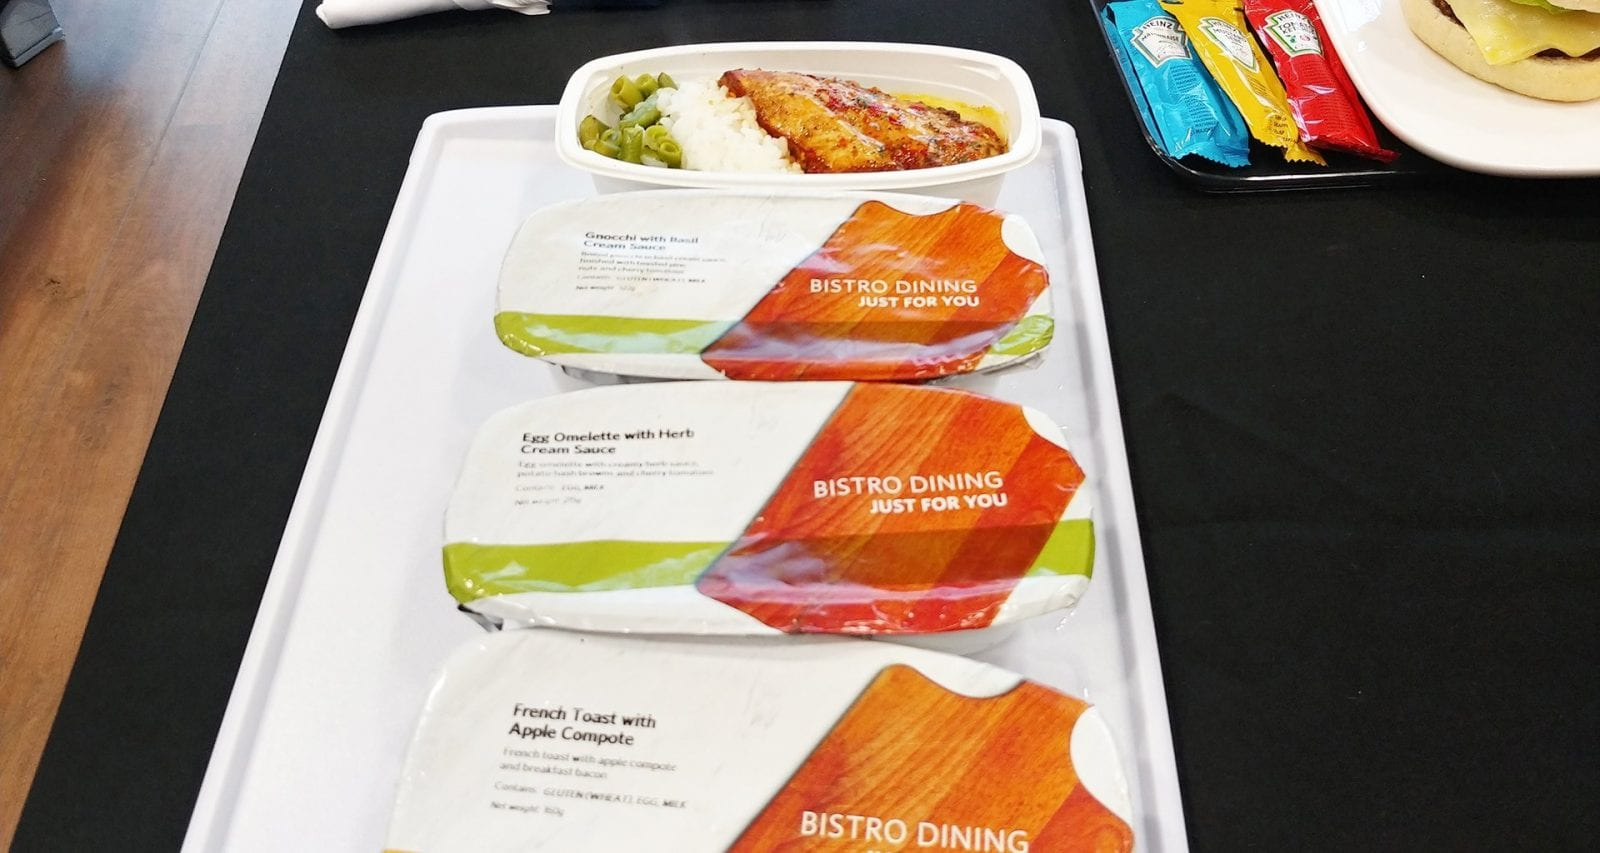 Delta main cabin hot meal options economy class